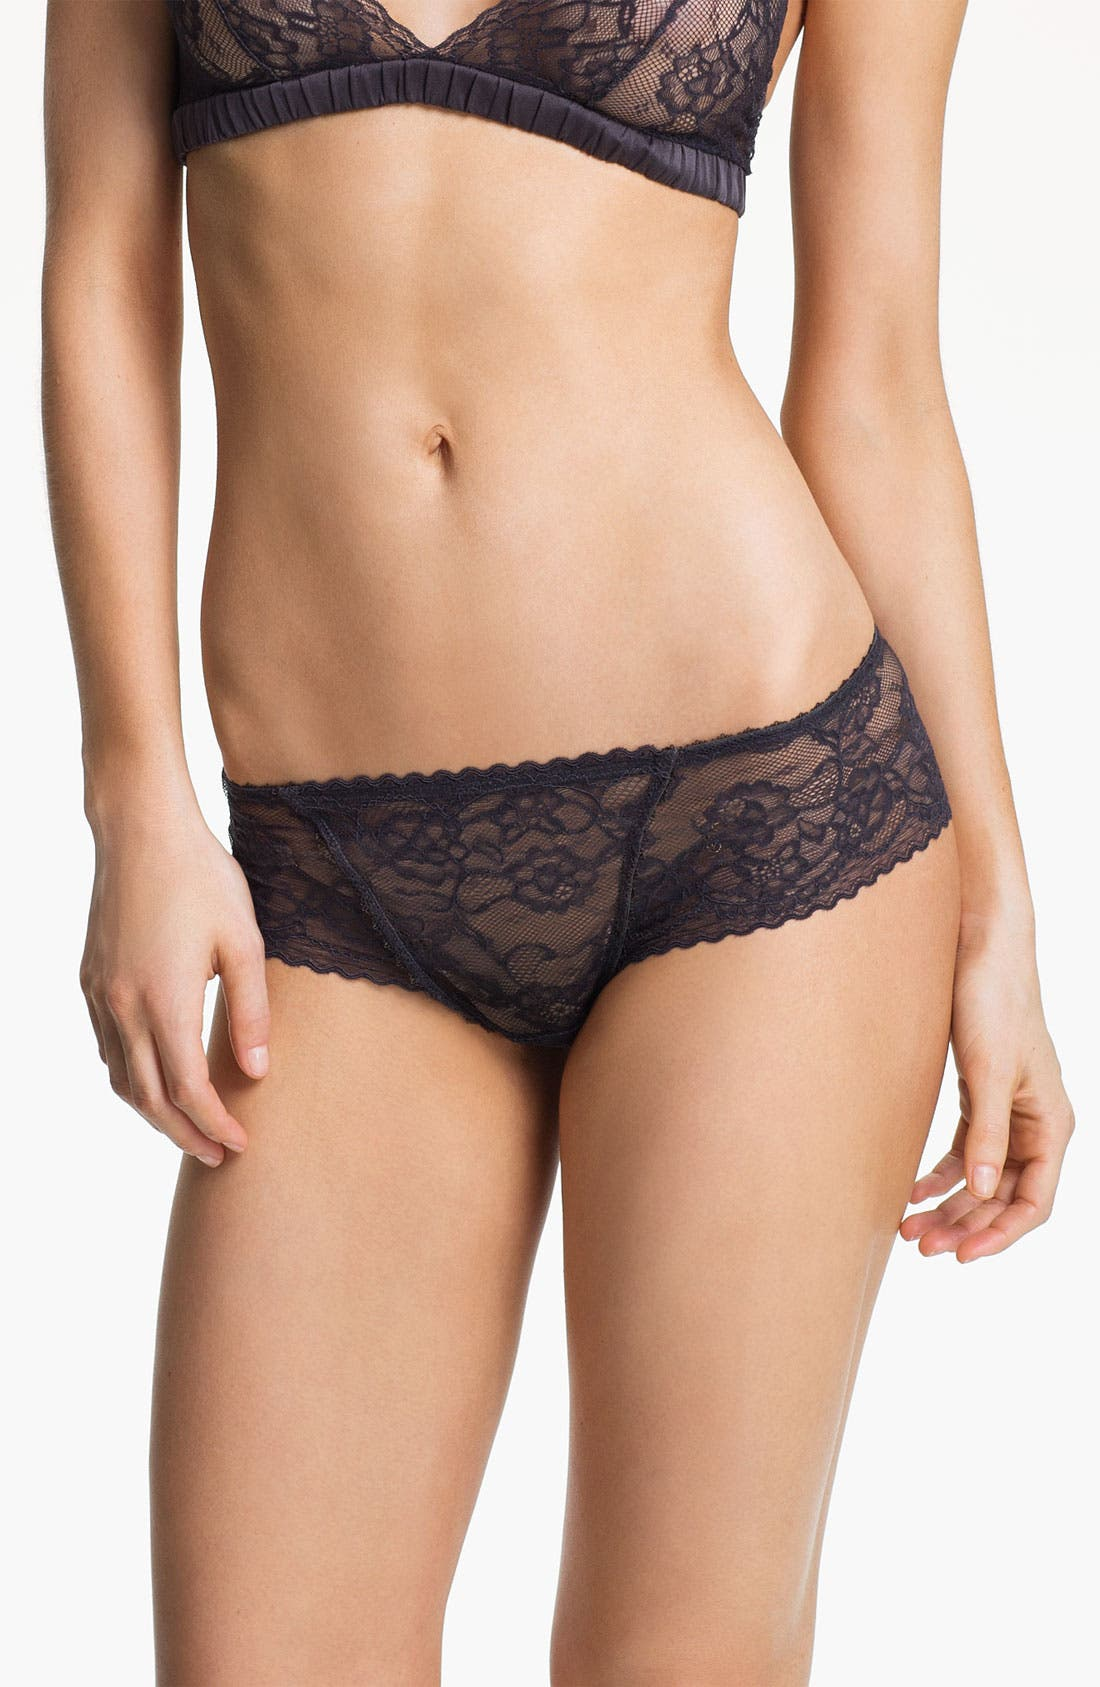 Alternate Image 1 Selected - Stella McCartney 'Yasmin Calling' Boyleg Hipster Briefs